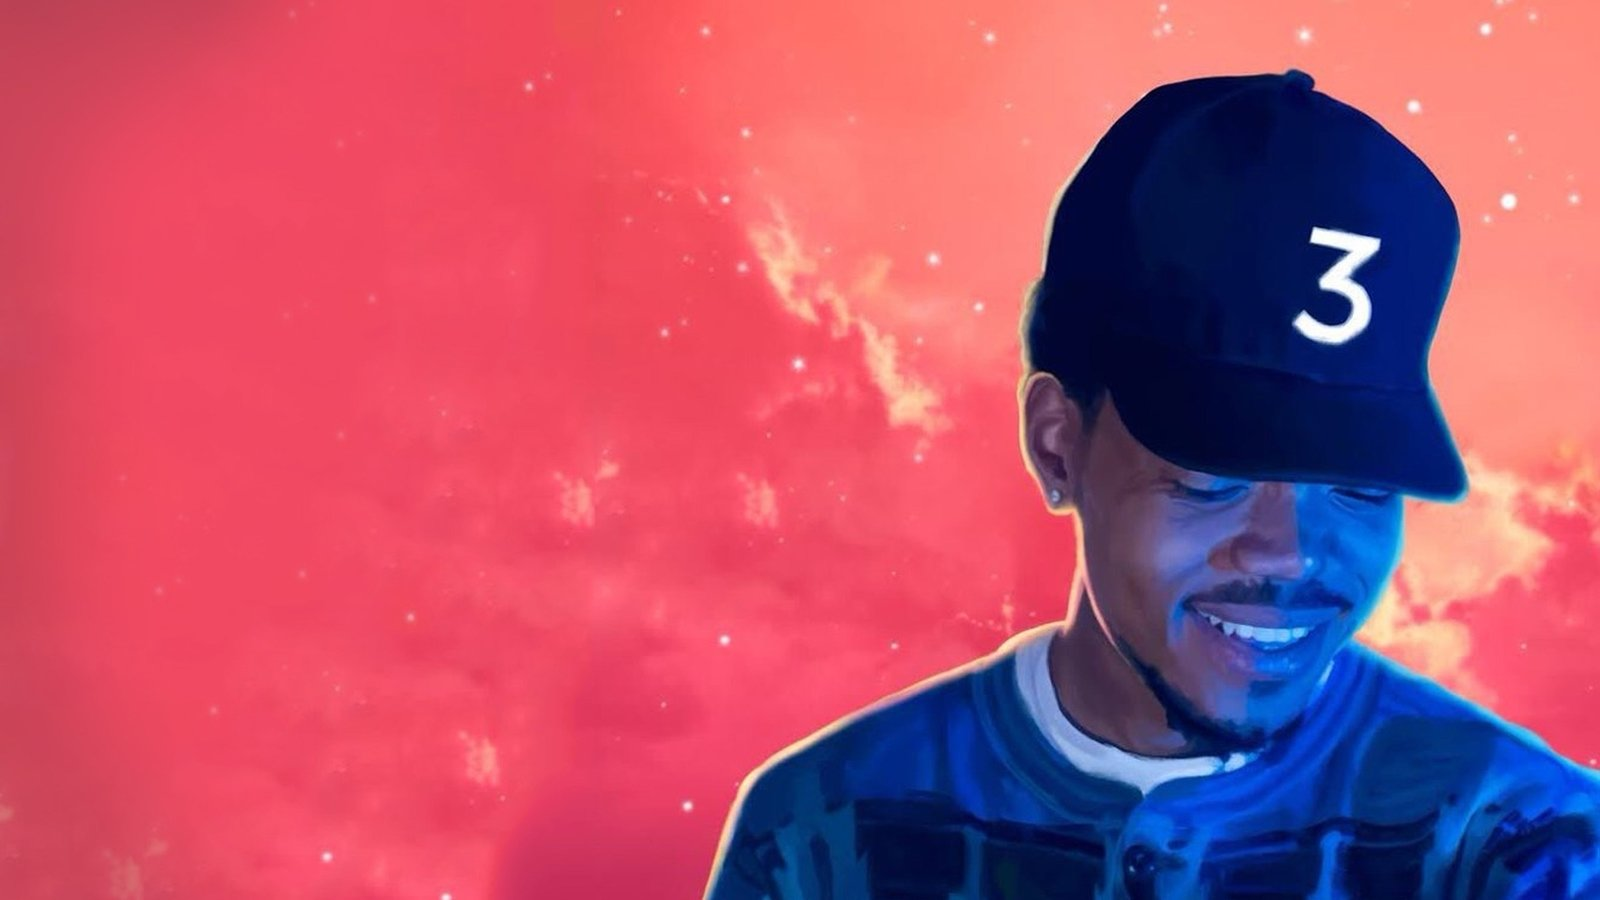 The coloring book chance the rapper download - Chance The Rapper Coloring Book Listening Session Tickets 5 4th Apr 2017 Close Up Cinema London Dice